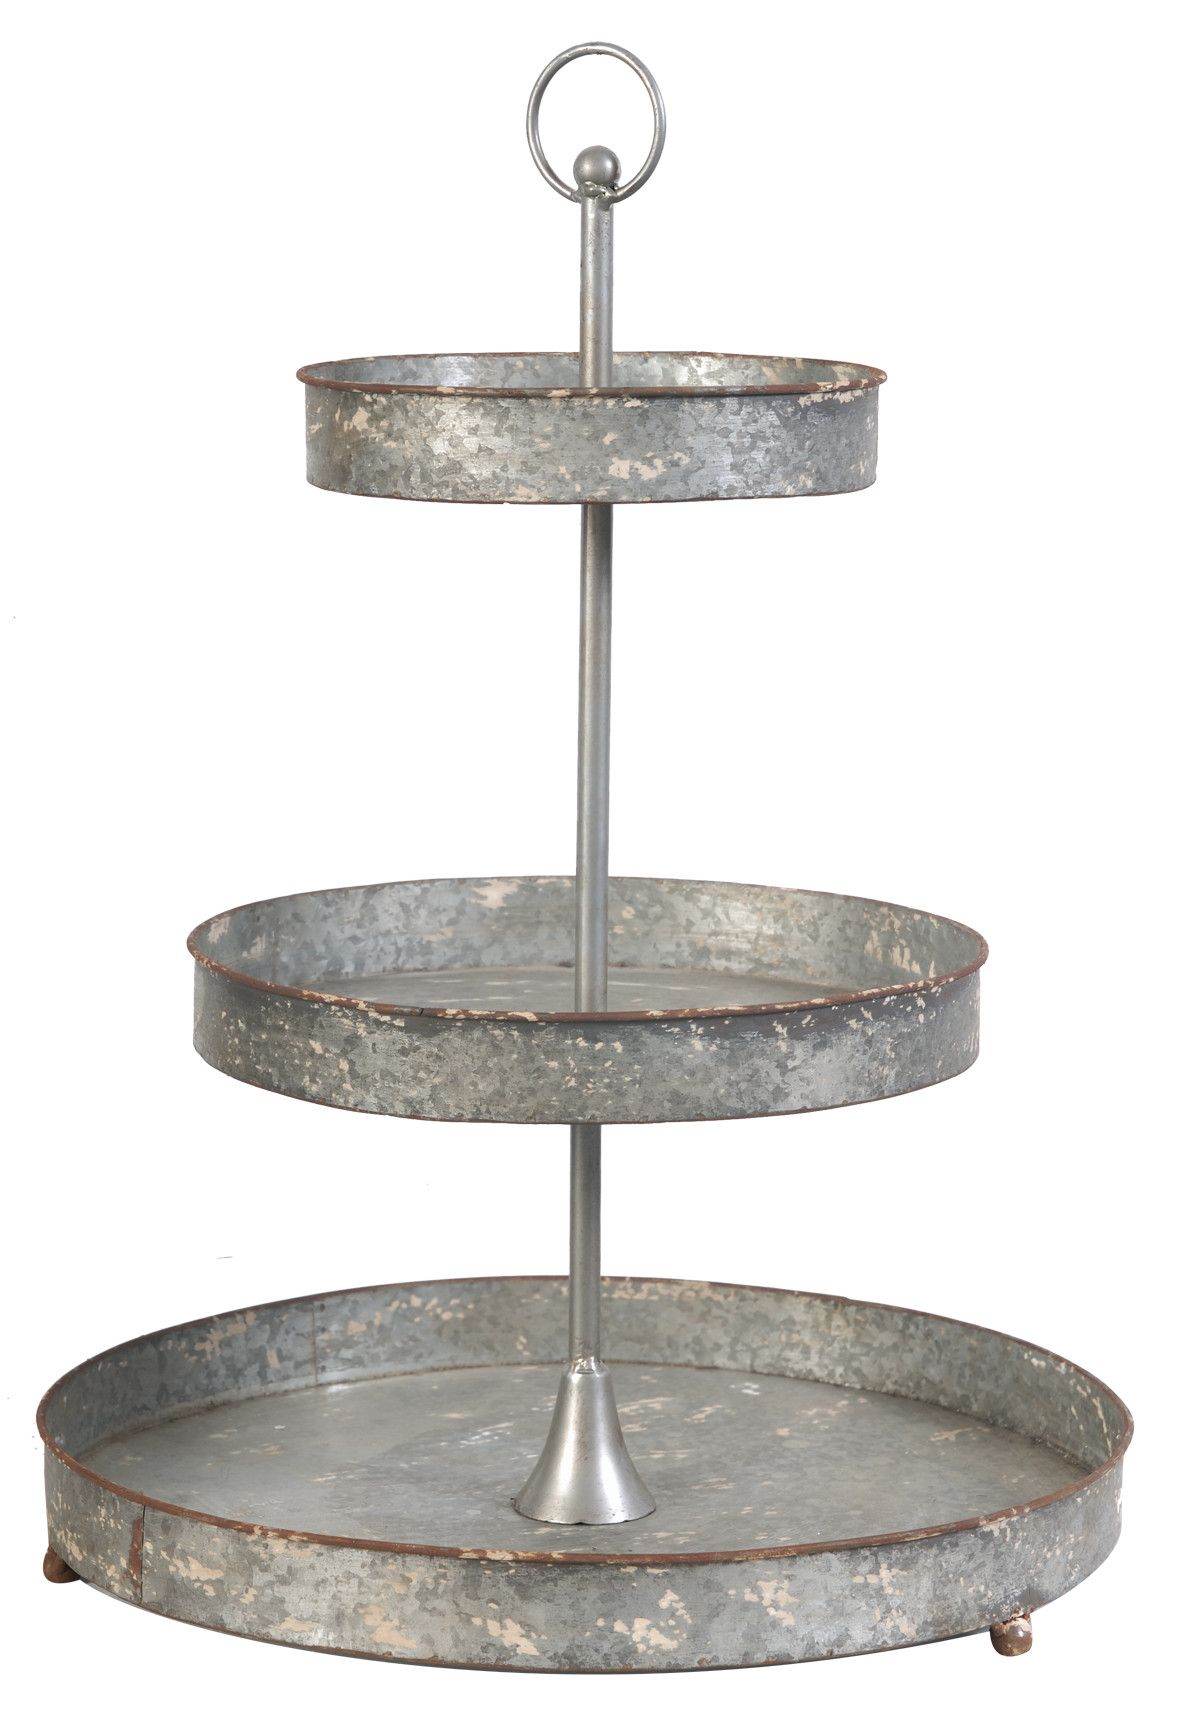 3 Tiered Stand Wayfair Fixer Upper Inspiration Tiered Stand 3 Tier Stand Metal Trays